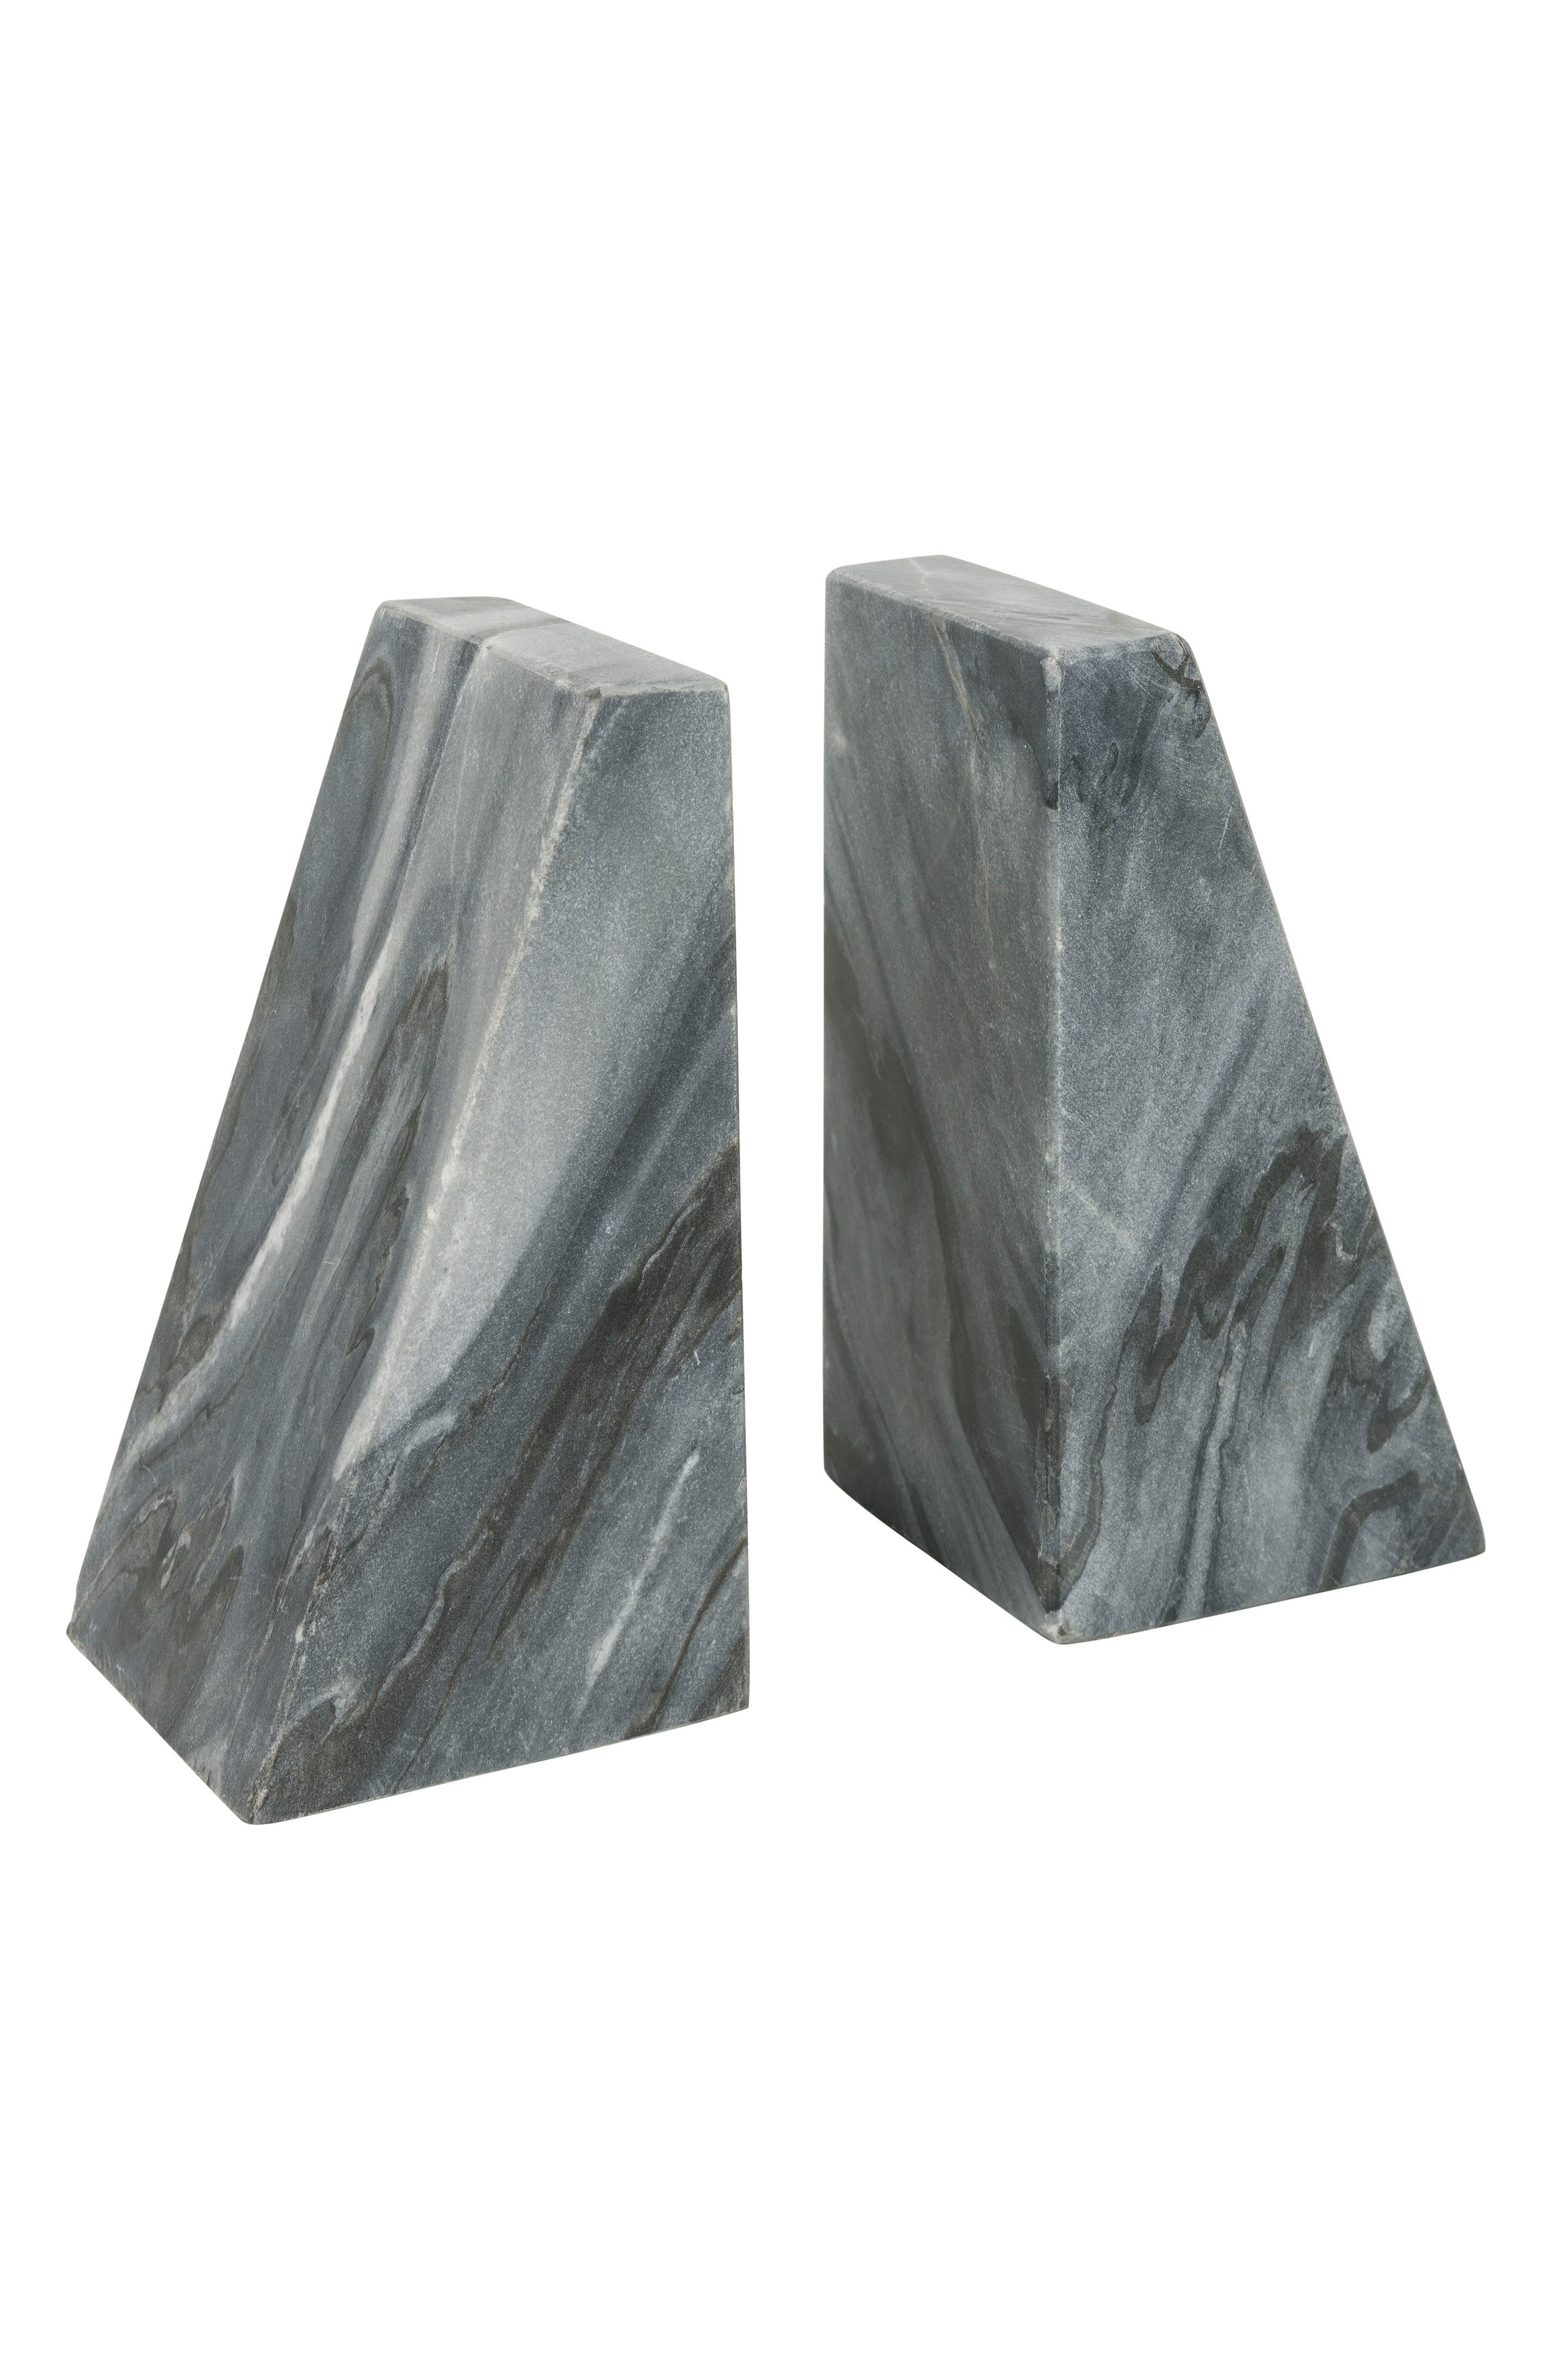 Mars Marble Bookends,                             Main thumbnail 1, color,                             Grey Marble